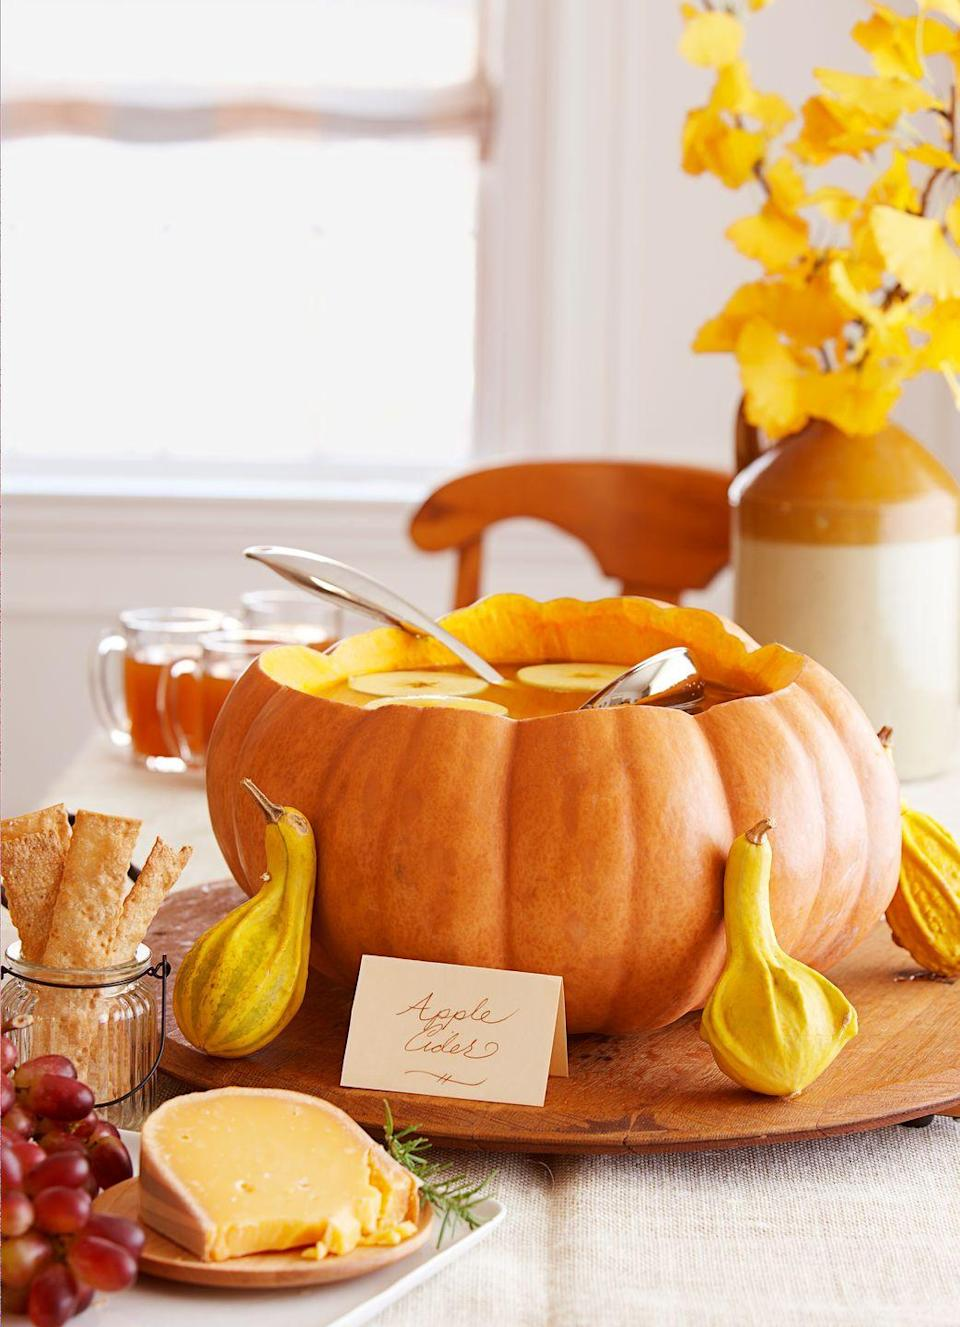 <p>Filled with cider, a hollowed-out pumpkin becomes an organic punch bowl. Plus, it's one less dish to wash during post-party clean-up. </p>